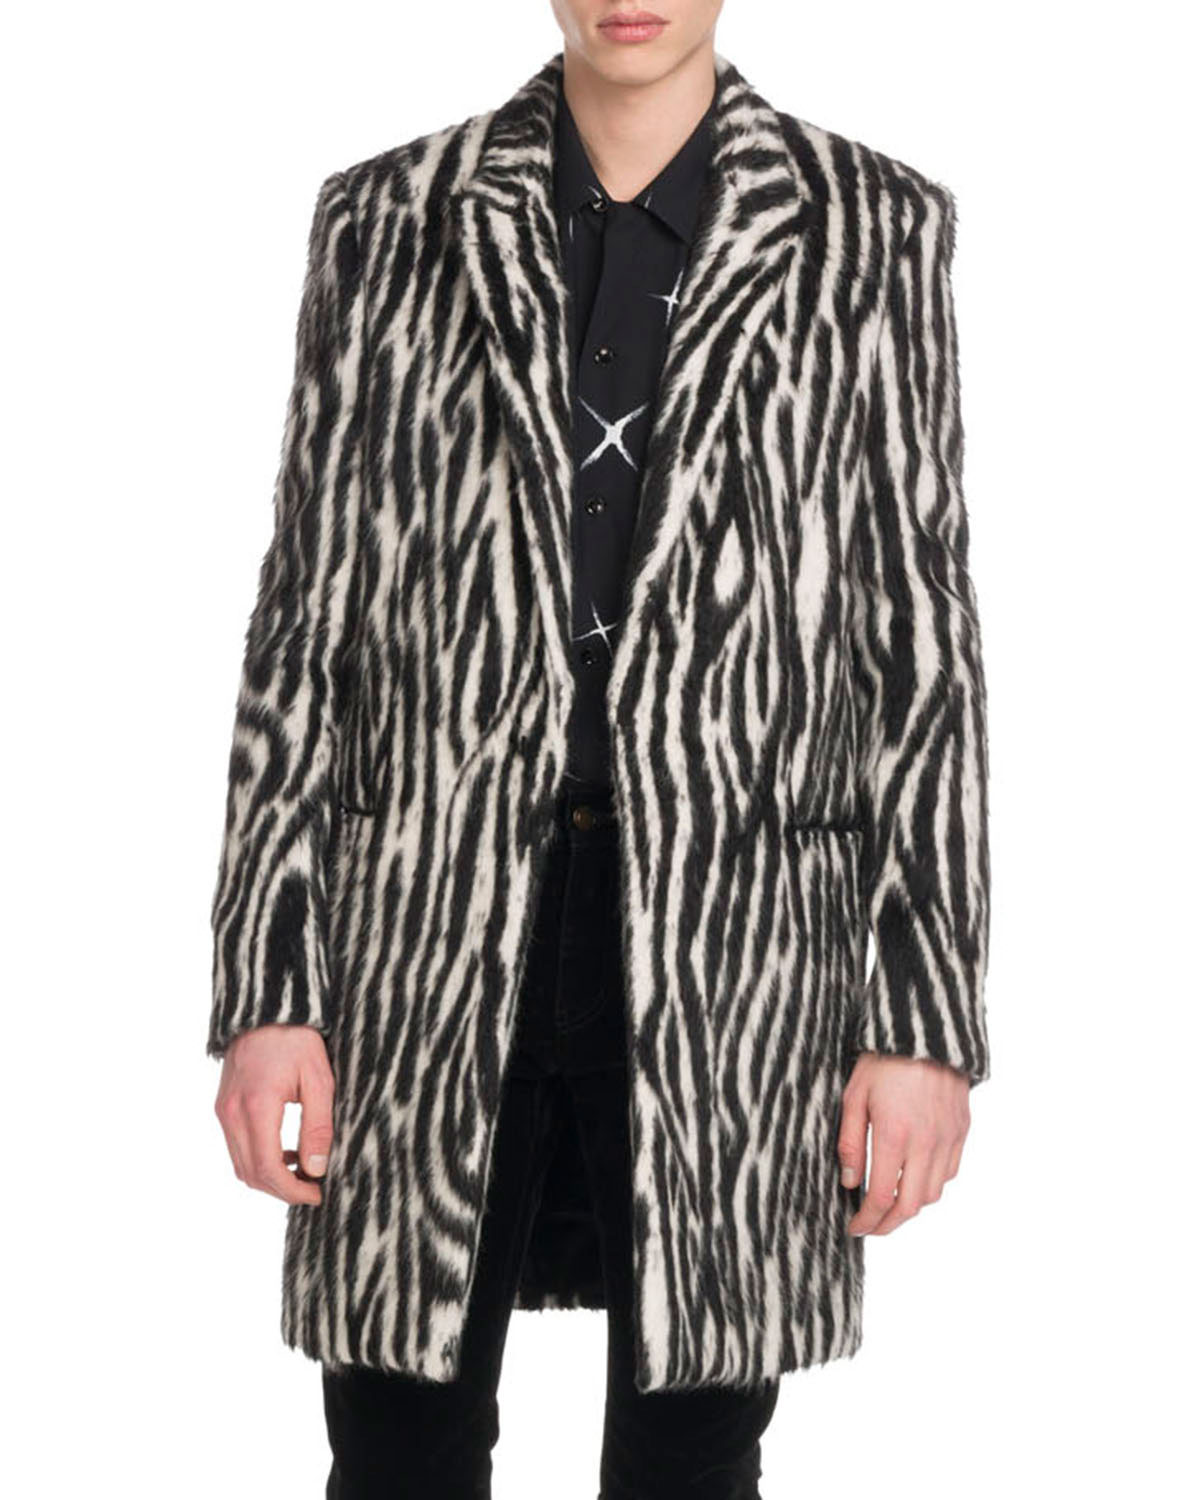 Men's Zebra-Stripe Fleece Coat